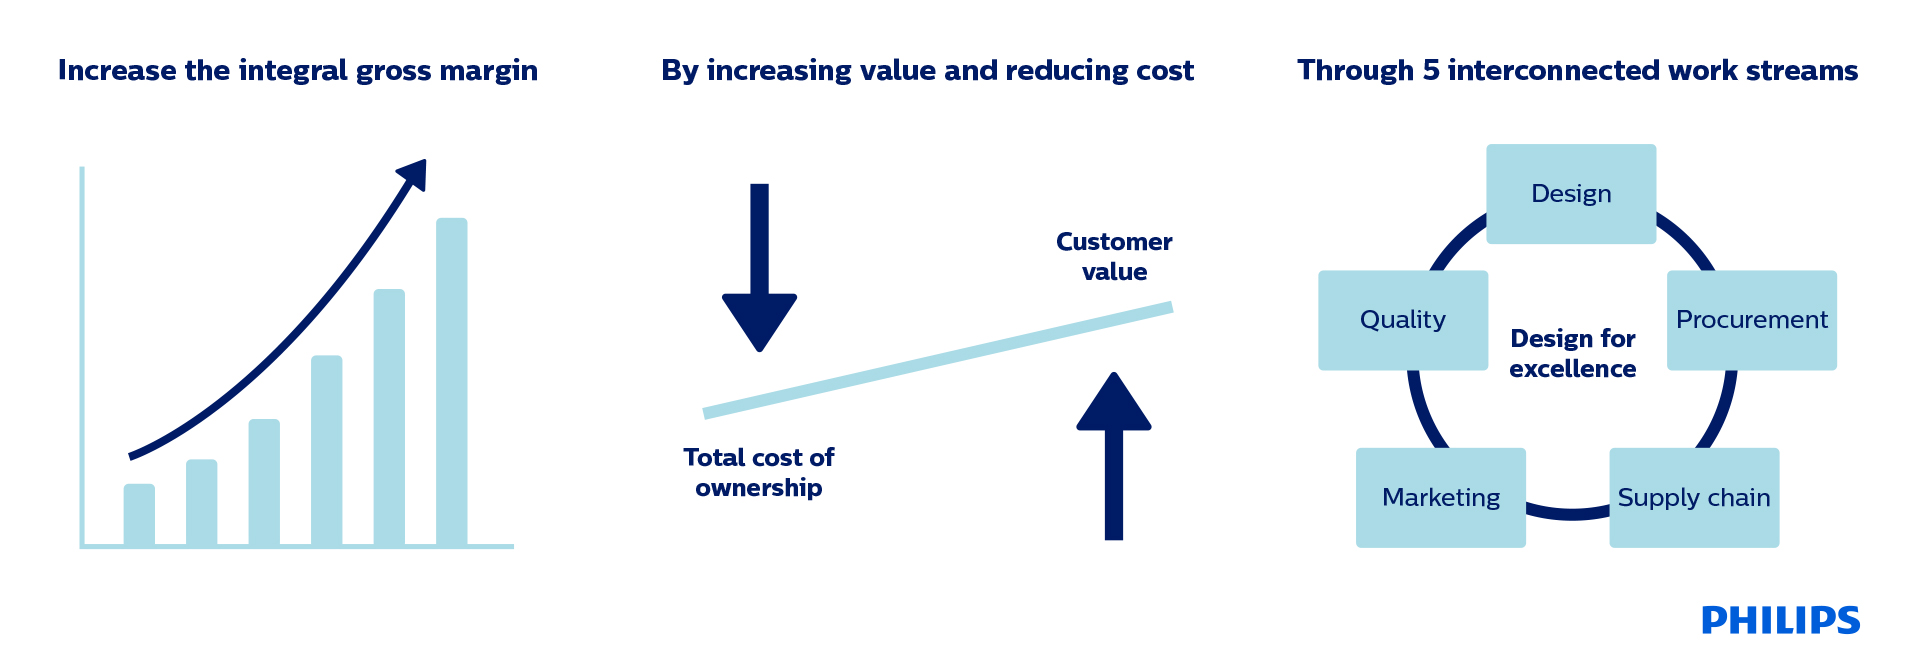 How to reduce cost and increase value with Design for Excellence